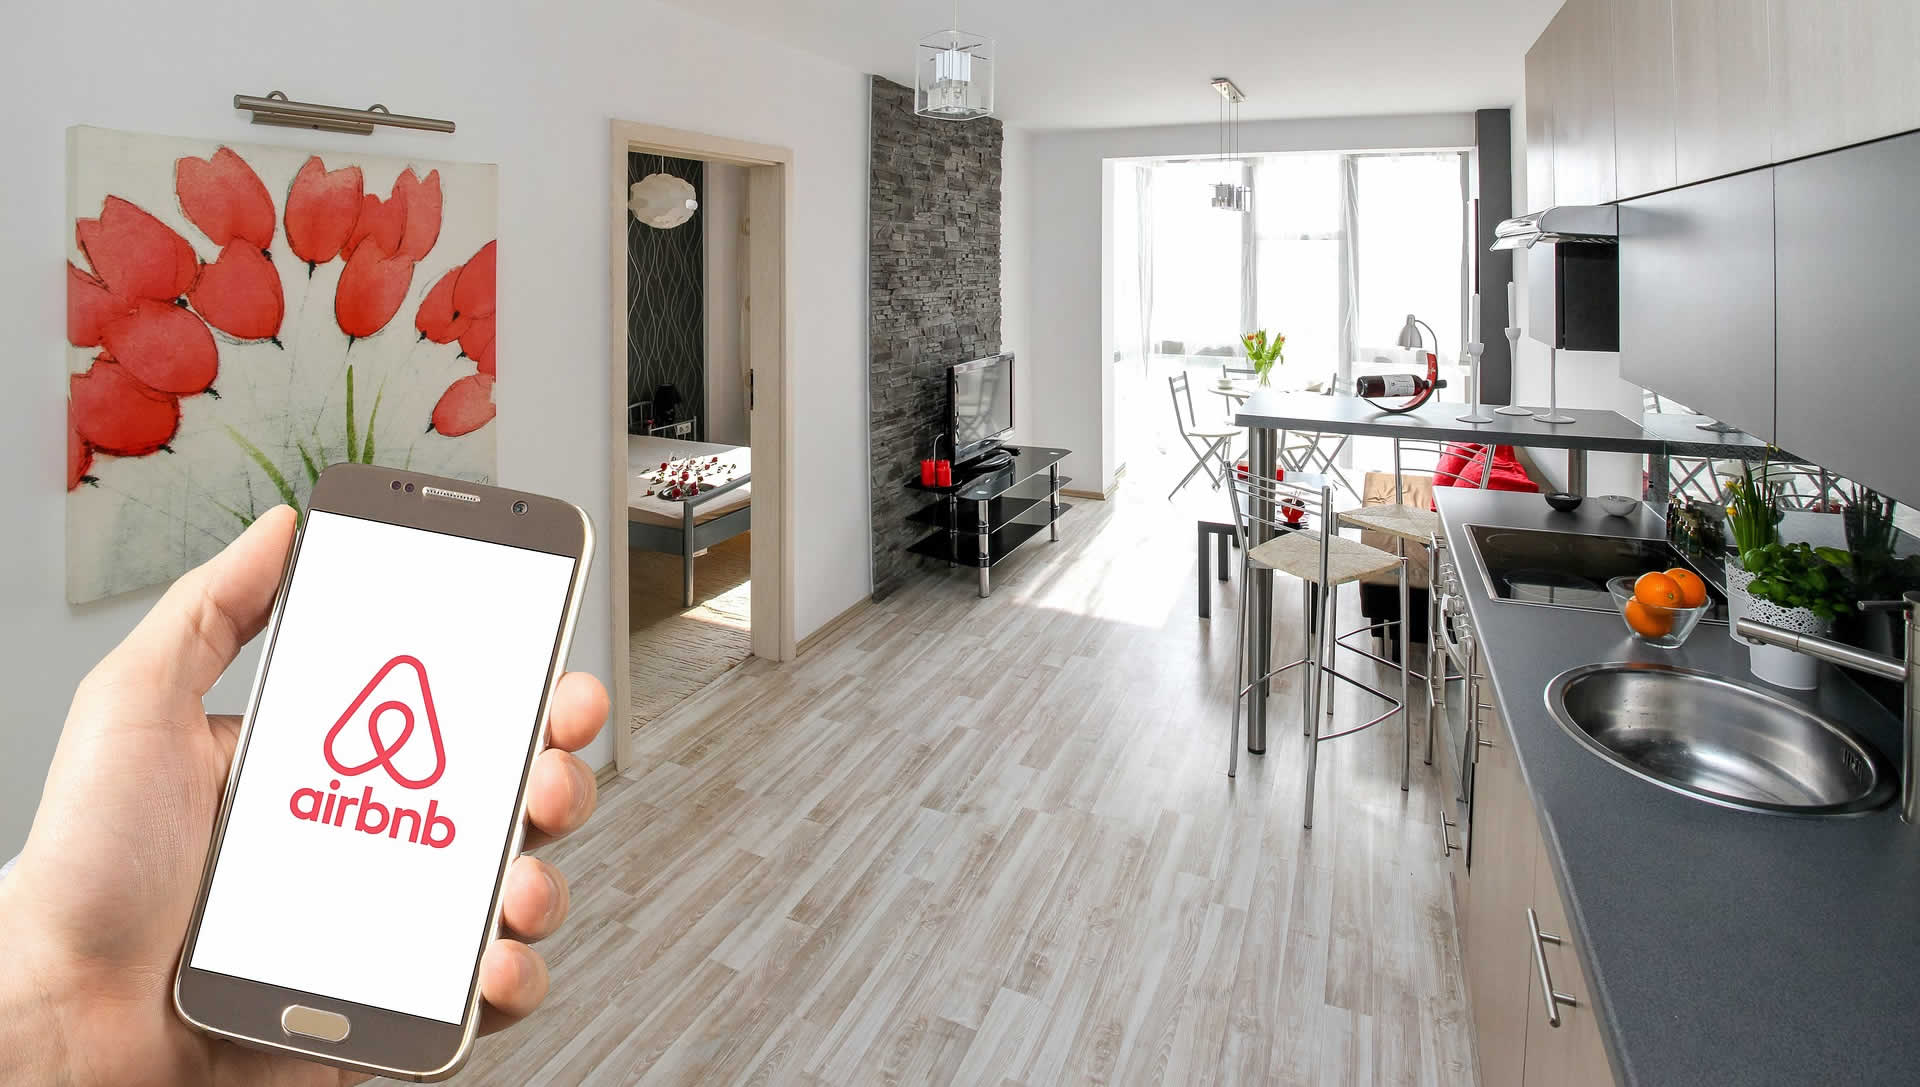 Airbnb Is Blocking Some July 4 Reservations to Prevent Potential House Parties